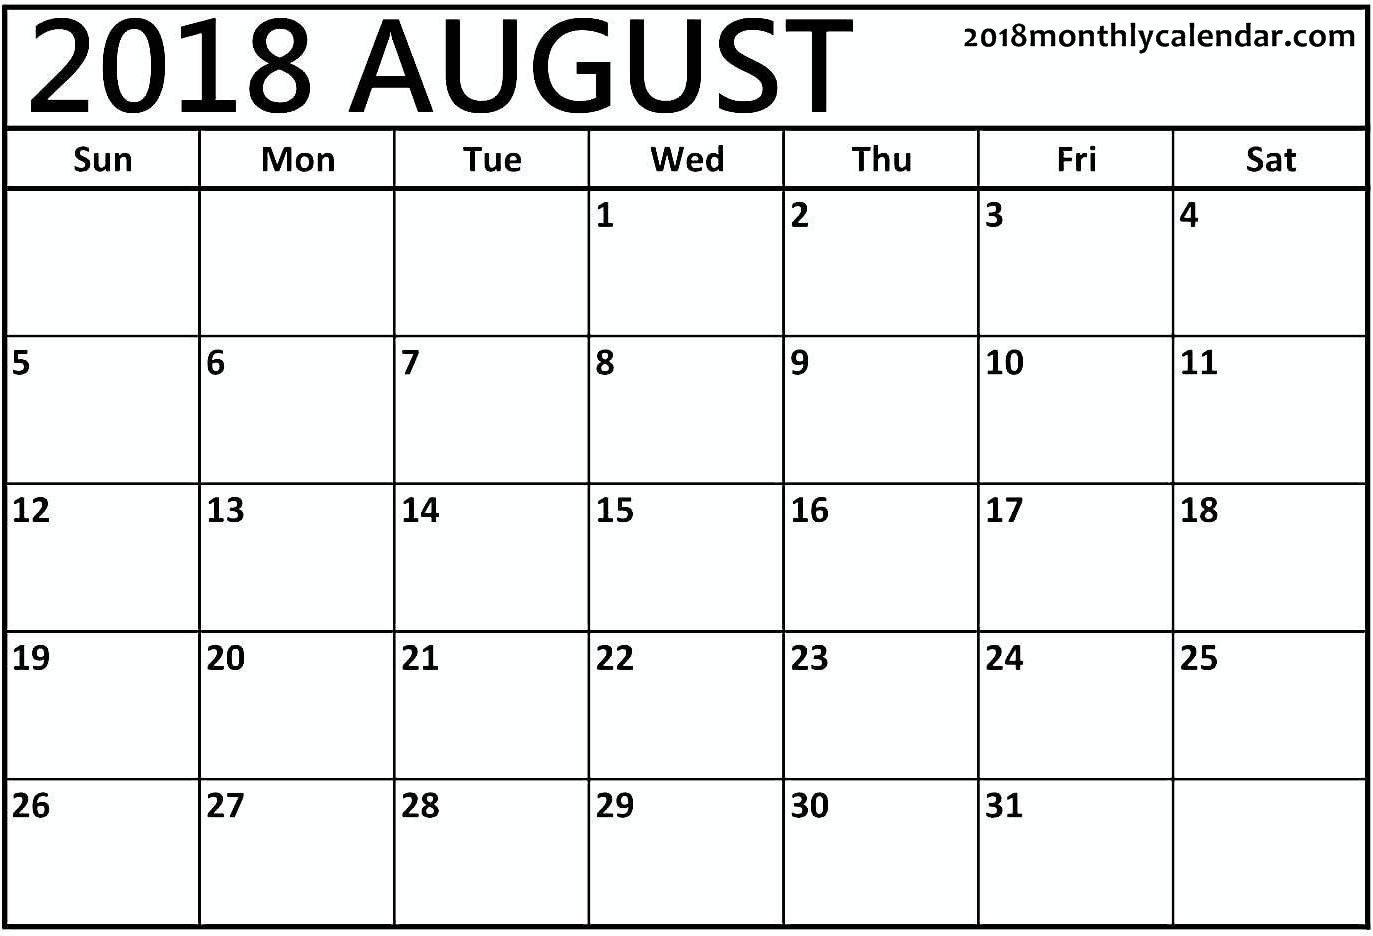 Download August 2018 - Printable Blank & Editable Calendar Calendar That I Can Edit